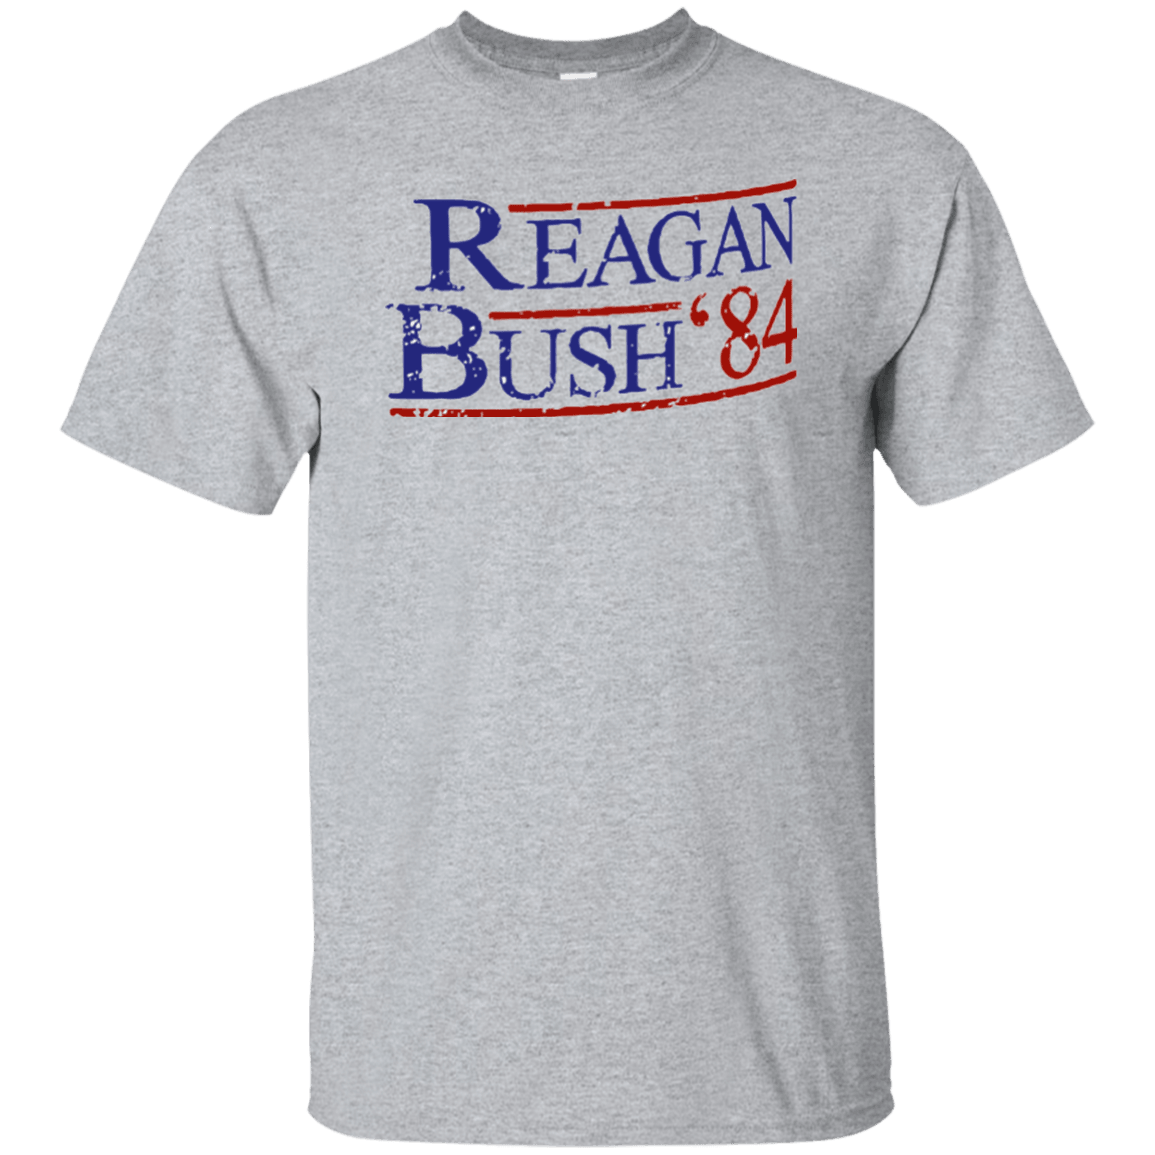 84 Reagan Bush Grey Ultra Cotton T-Shirt - Generation T